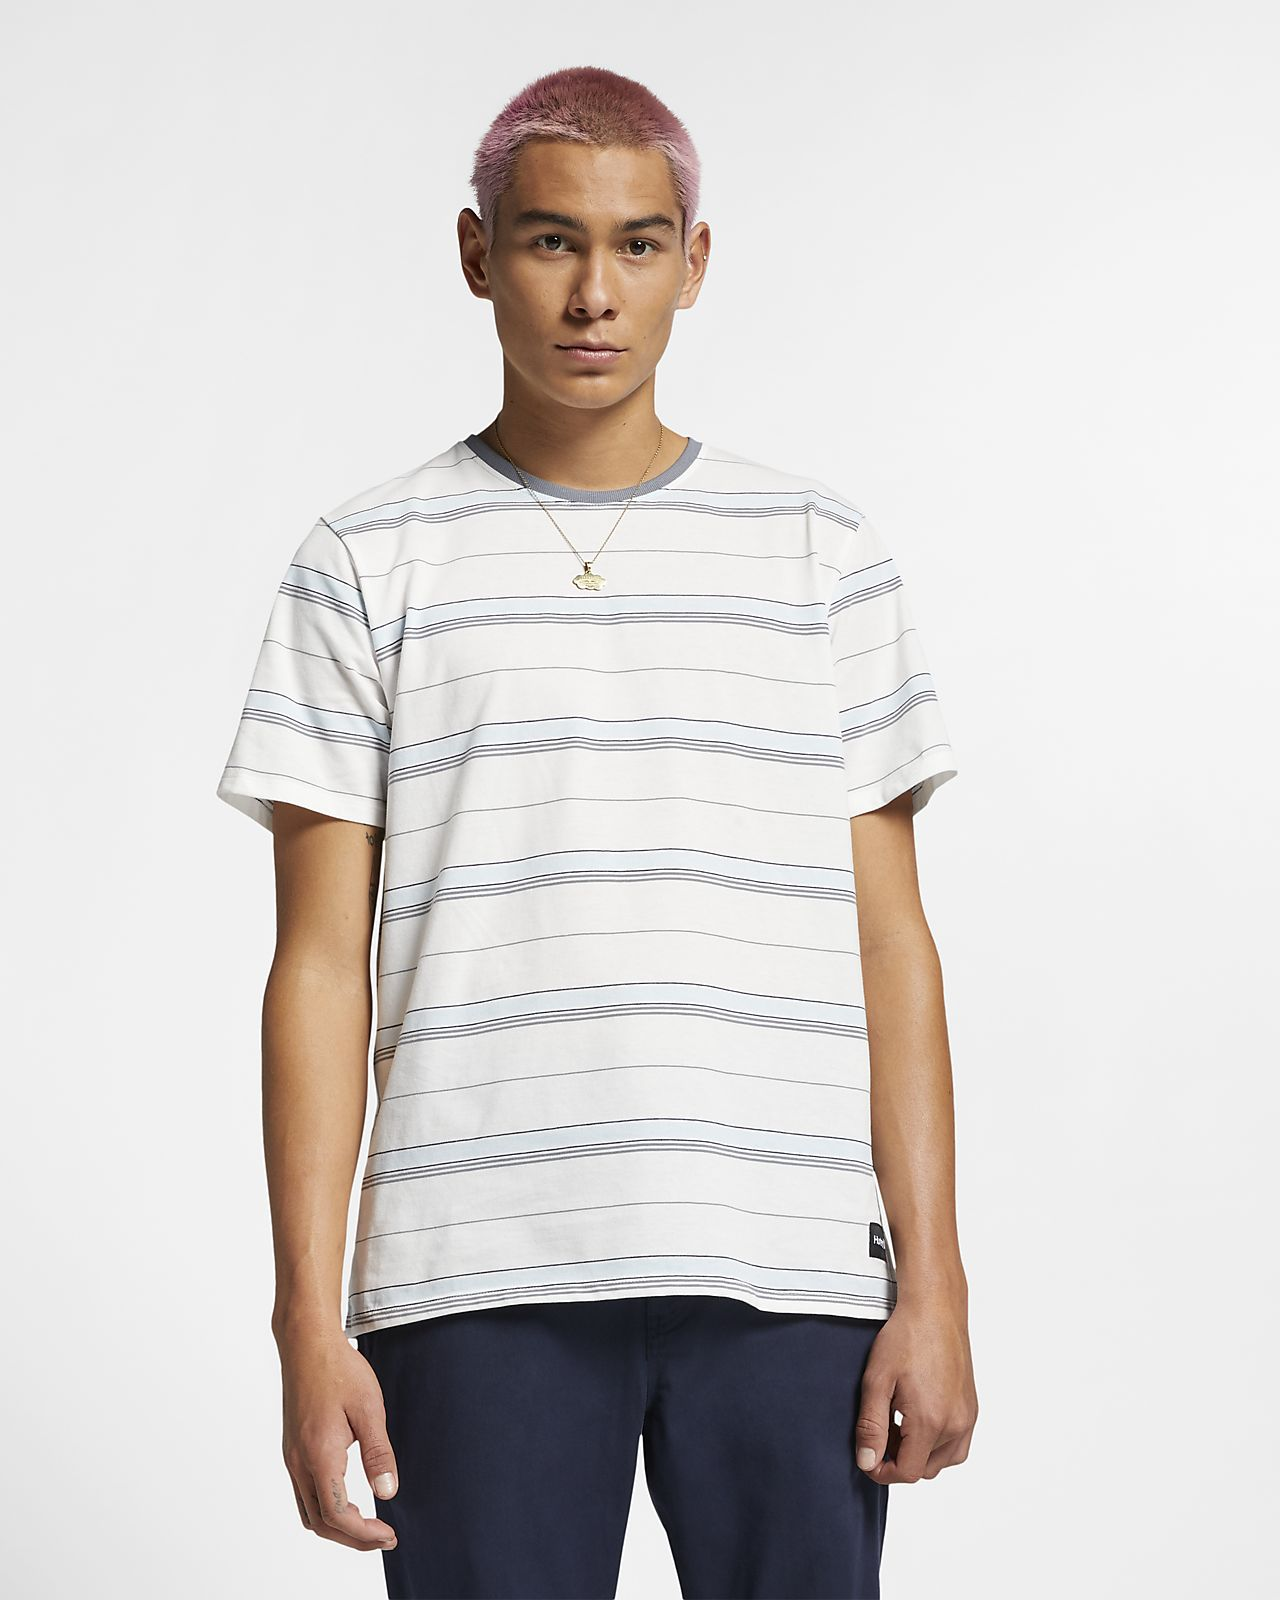 Hurley Dri-FIT Harvey Men's Striped Top